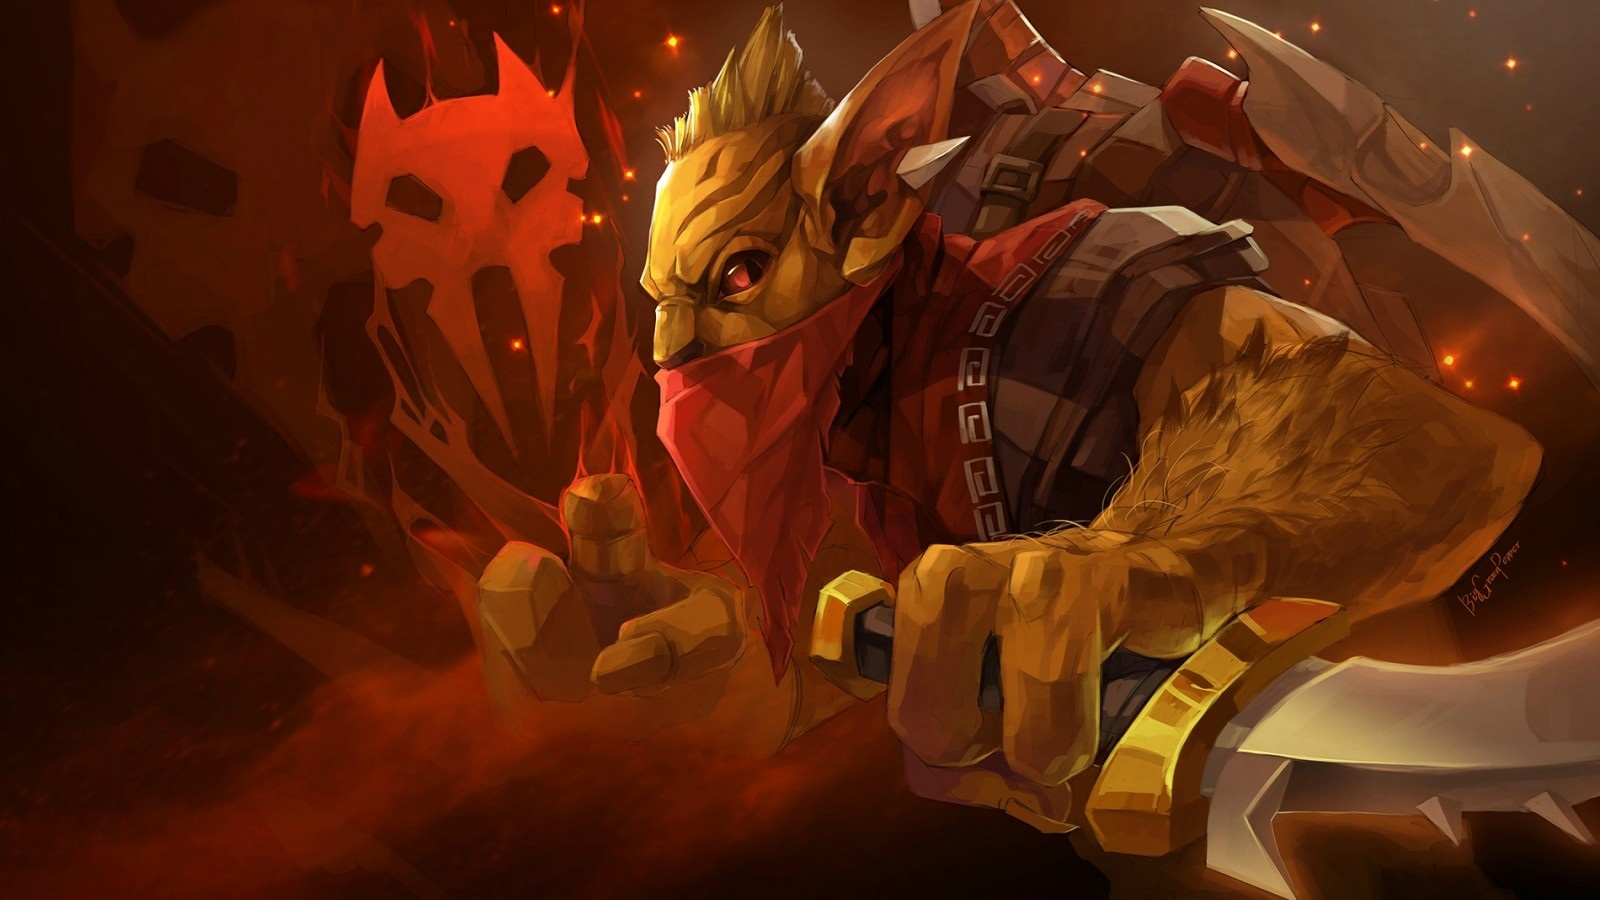 Bounty Hunter download wallpapers for desktop Dota 2